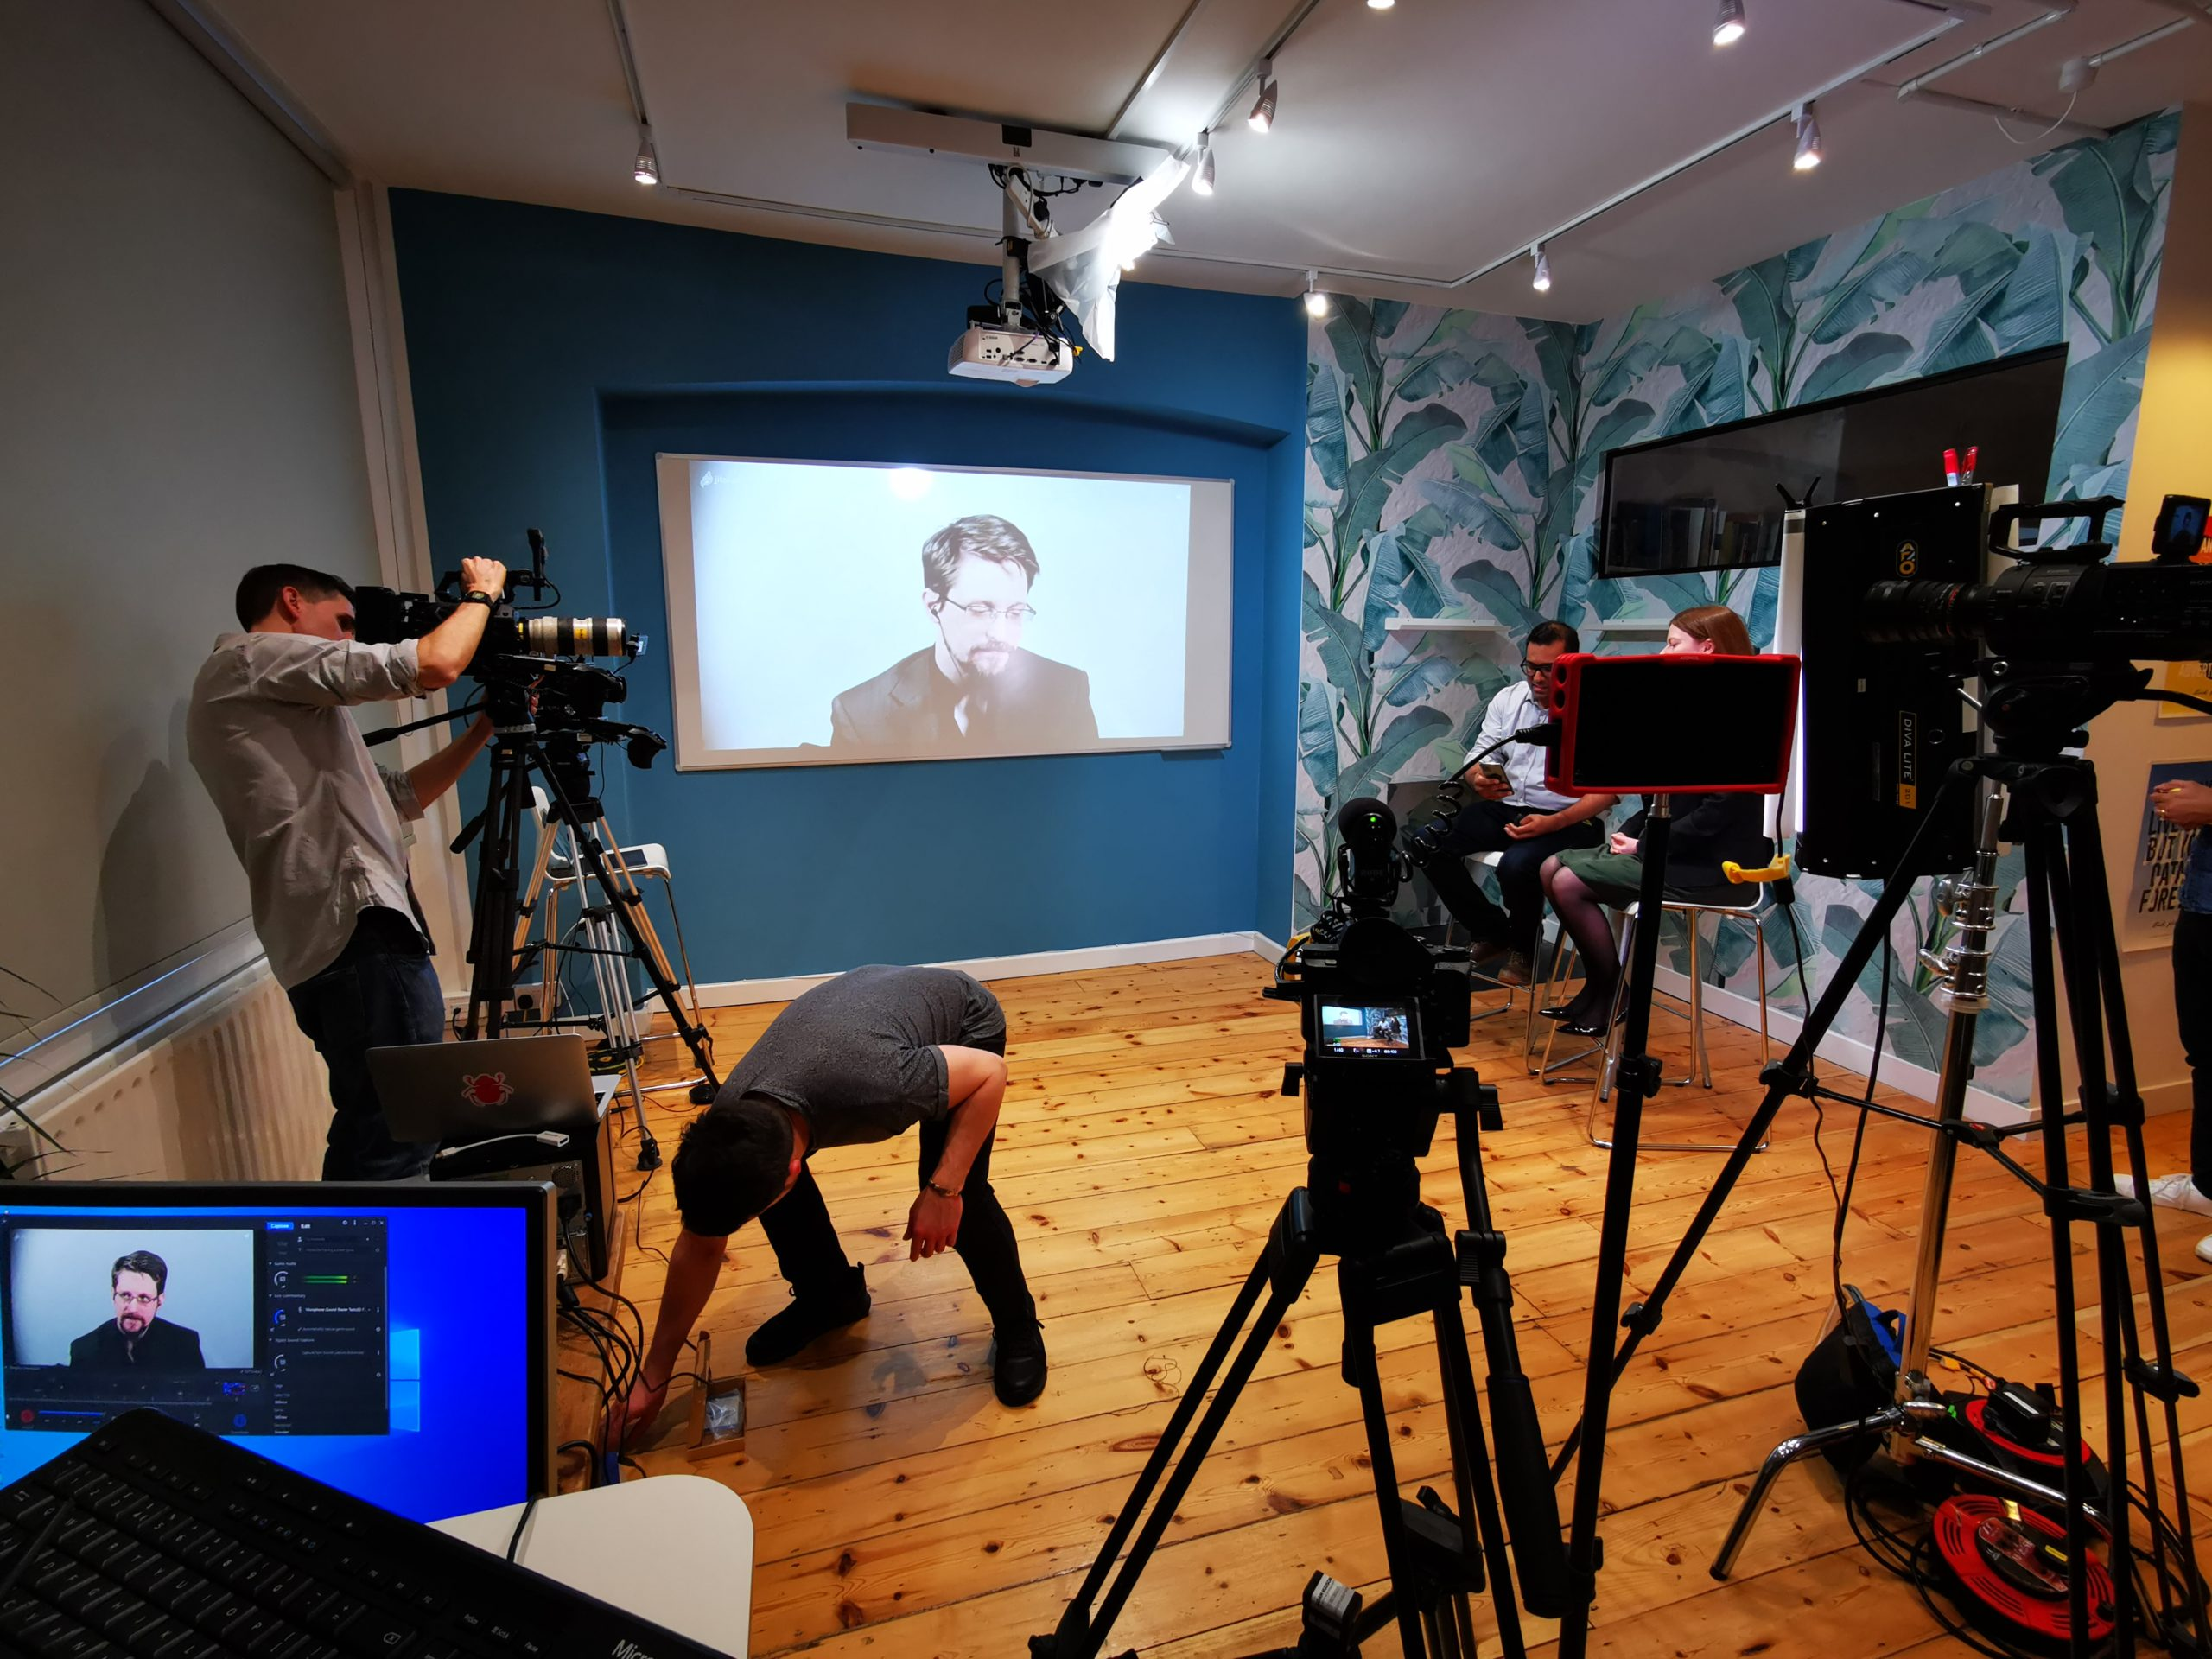 set up of cameras on a shoot